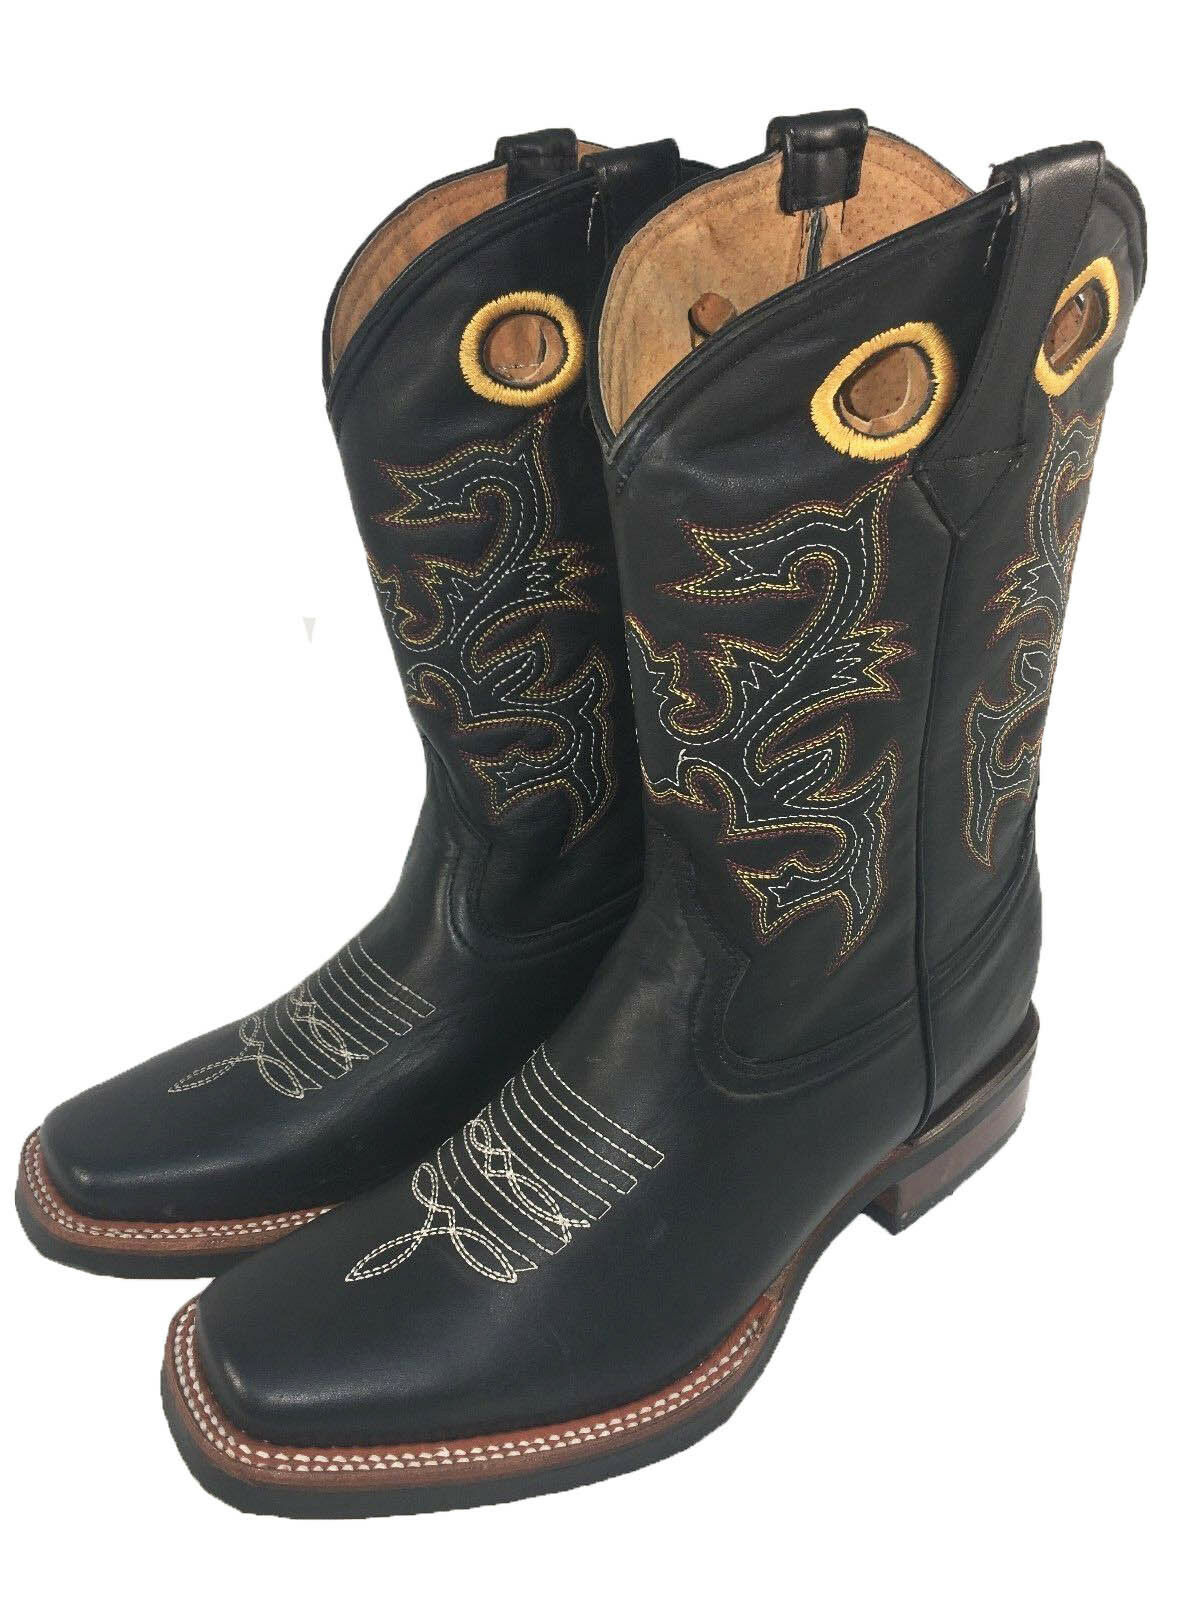 MEN'S RODEO COWBOY BOOTS GENUINE LEATHER WESTERN SQUARE TOE BOTAS VAQUERAS